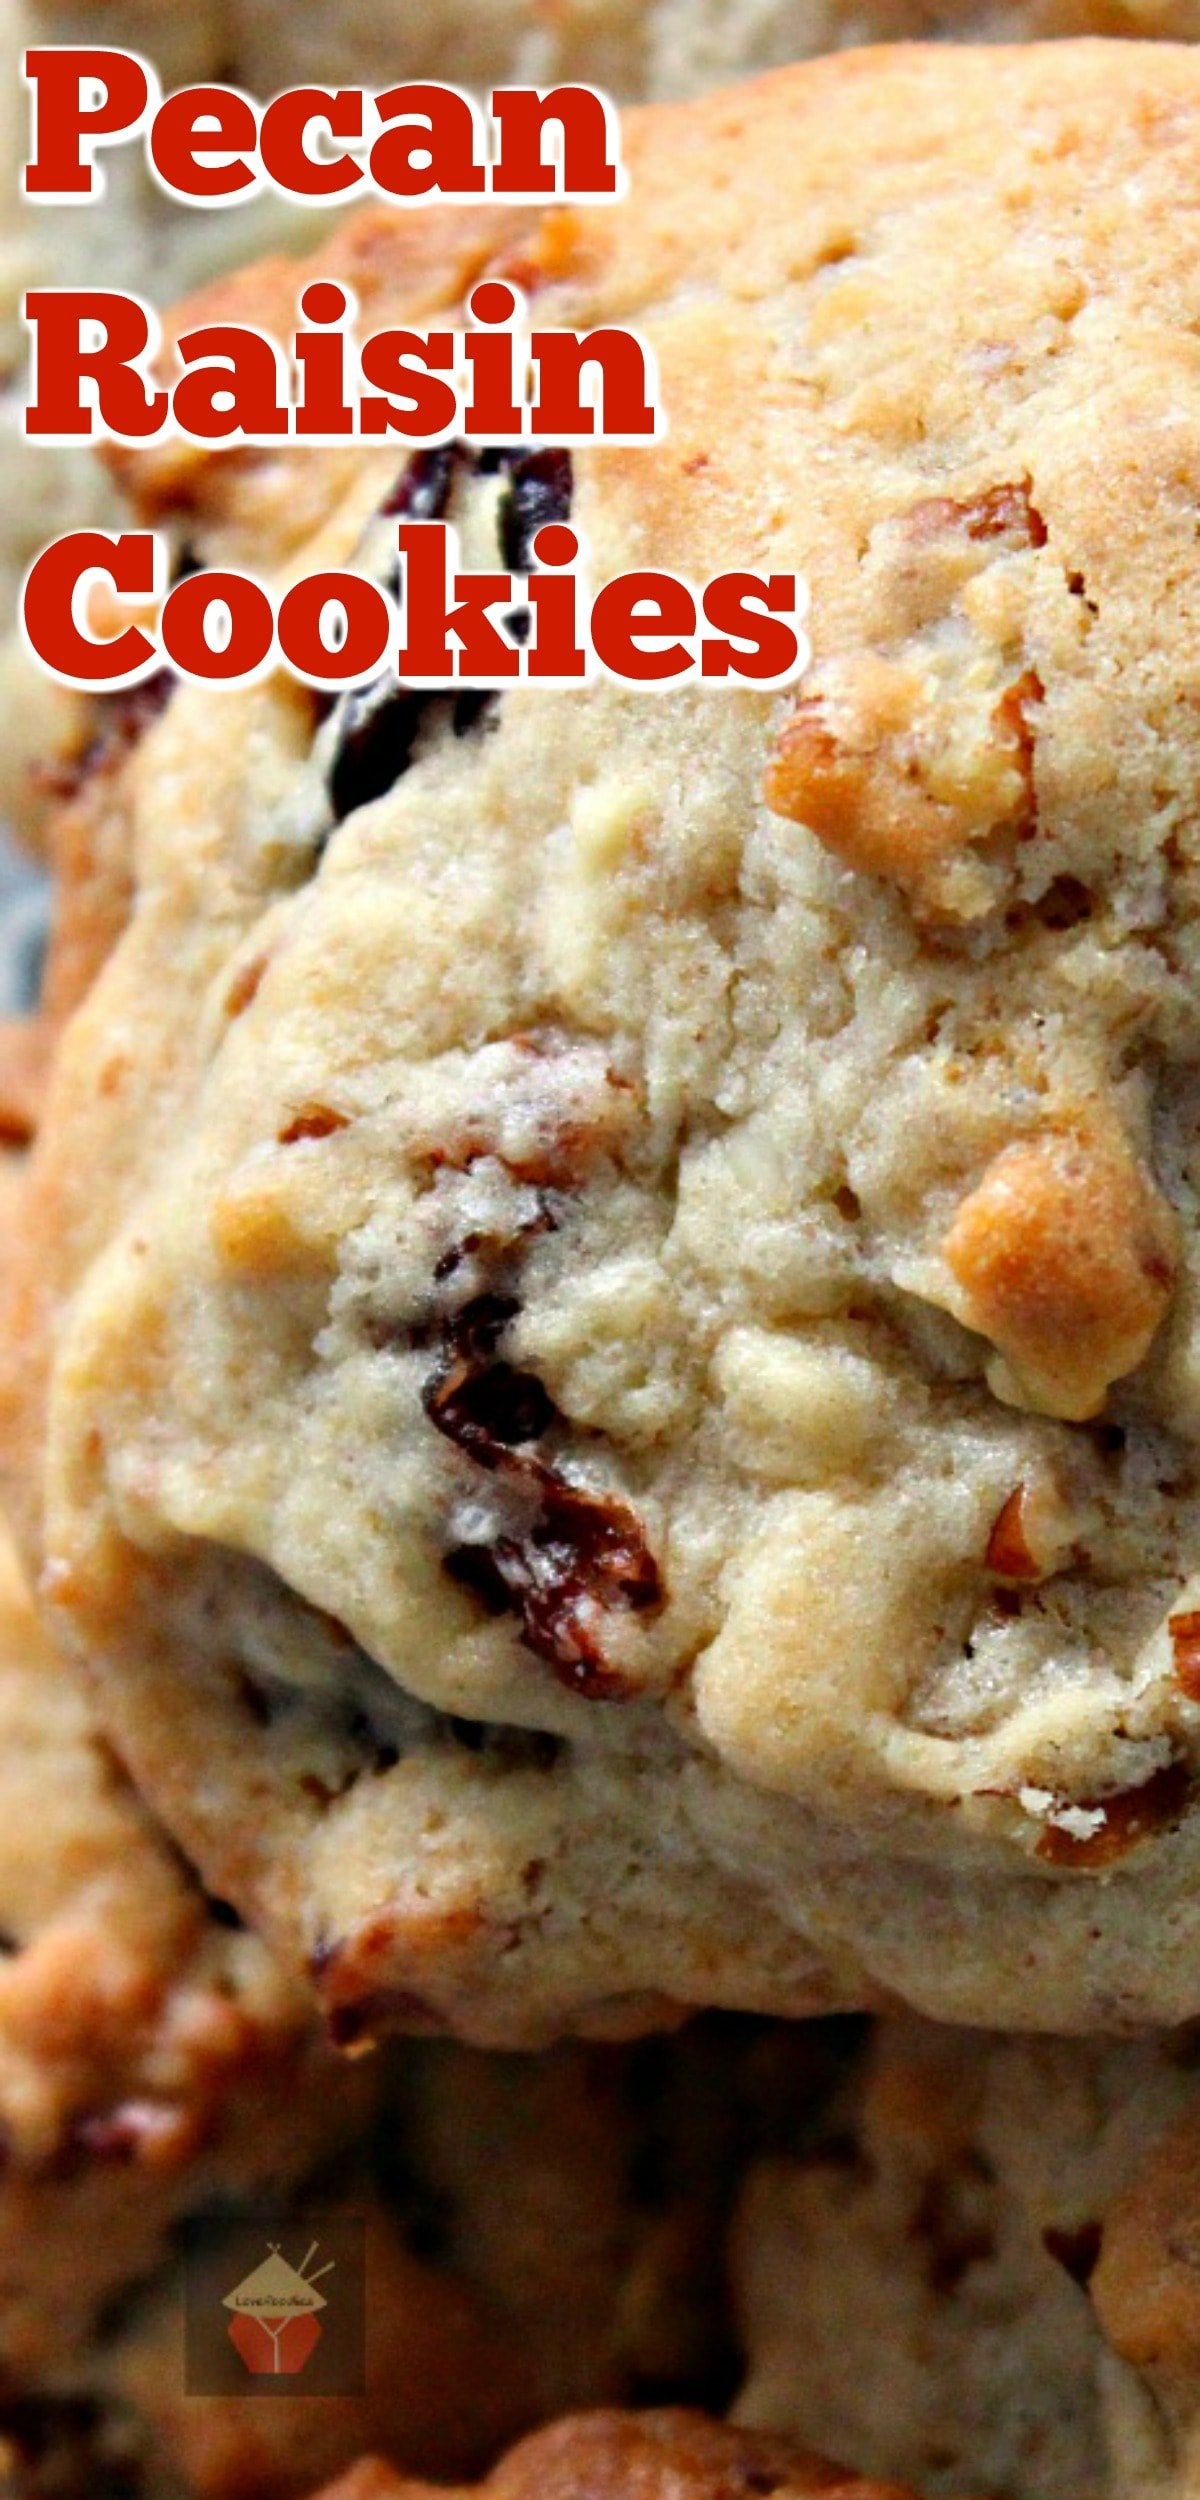 Pecan Raisin Cookies. Delicious easy cookies perfect with a glass of milk or cup of tea! Also great for gifts! Very flexible recipe so you can swap the raisins and pecans for other fruits and nuts! Yummy!